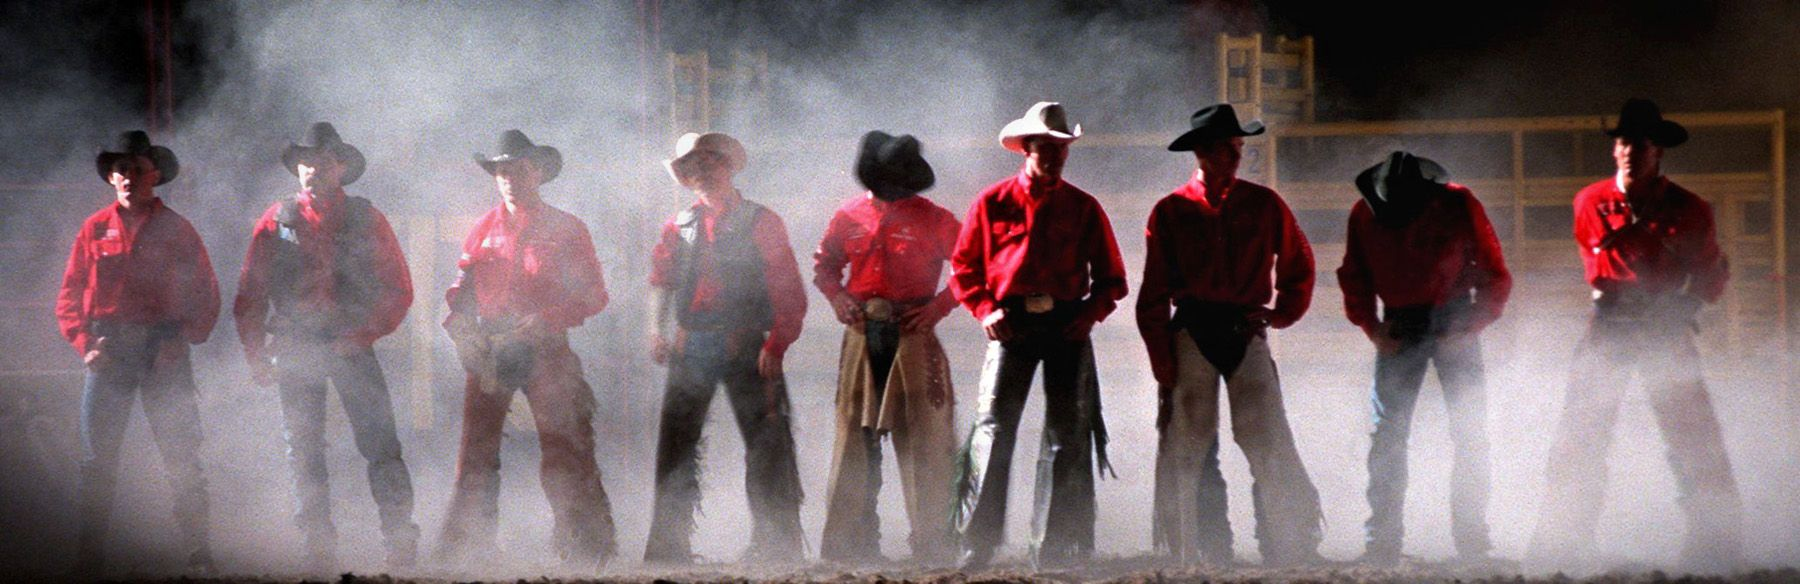 The Marlboro Men